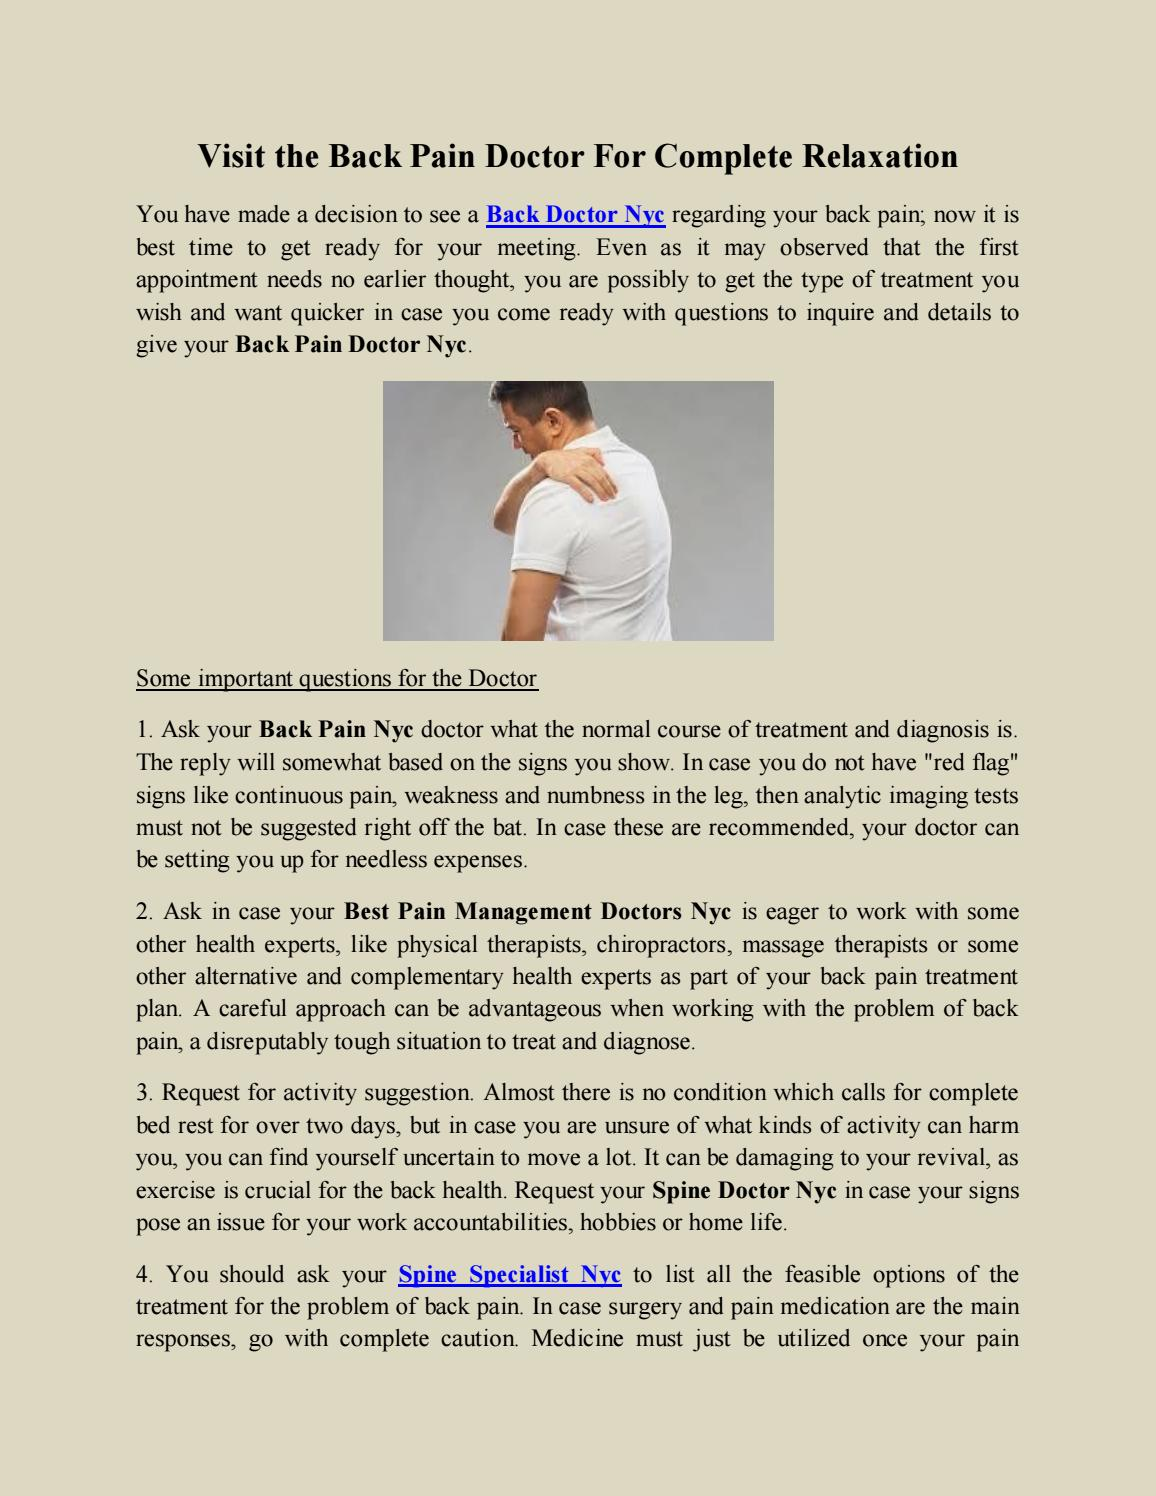 Visit the Back Pain Doctor For Complete Relaxation by